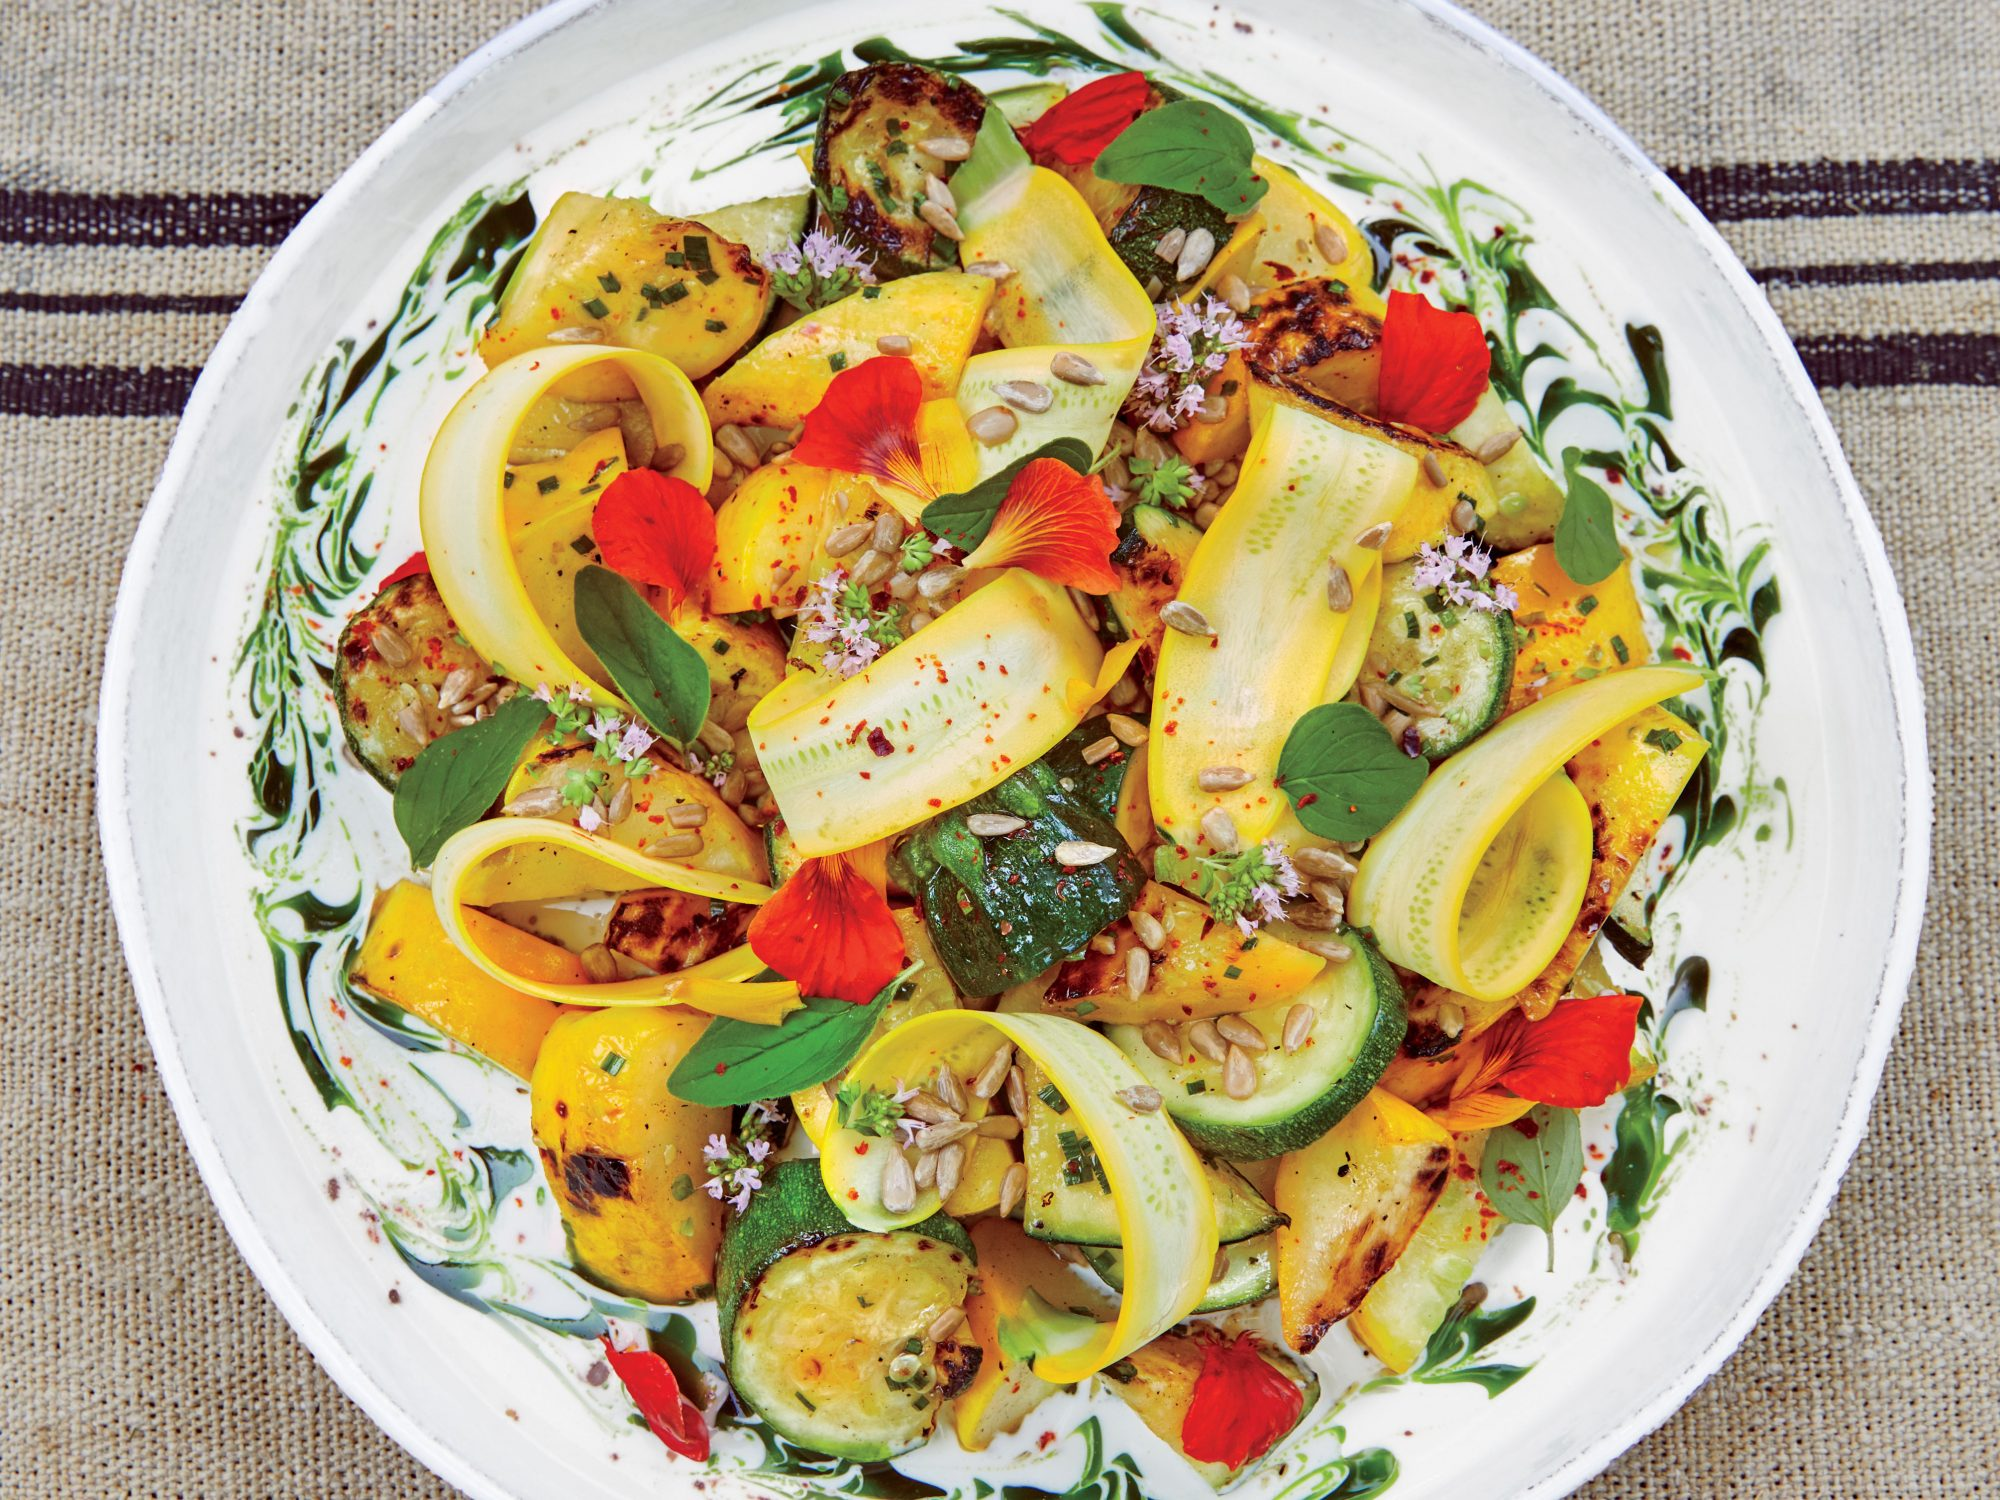 Herbed Summer Squash with Goat Cream Cheese